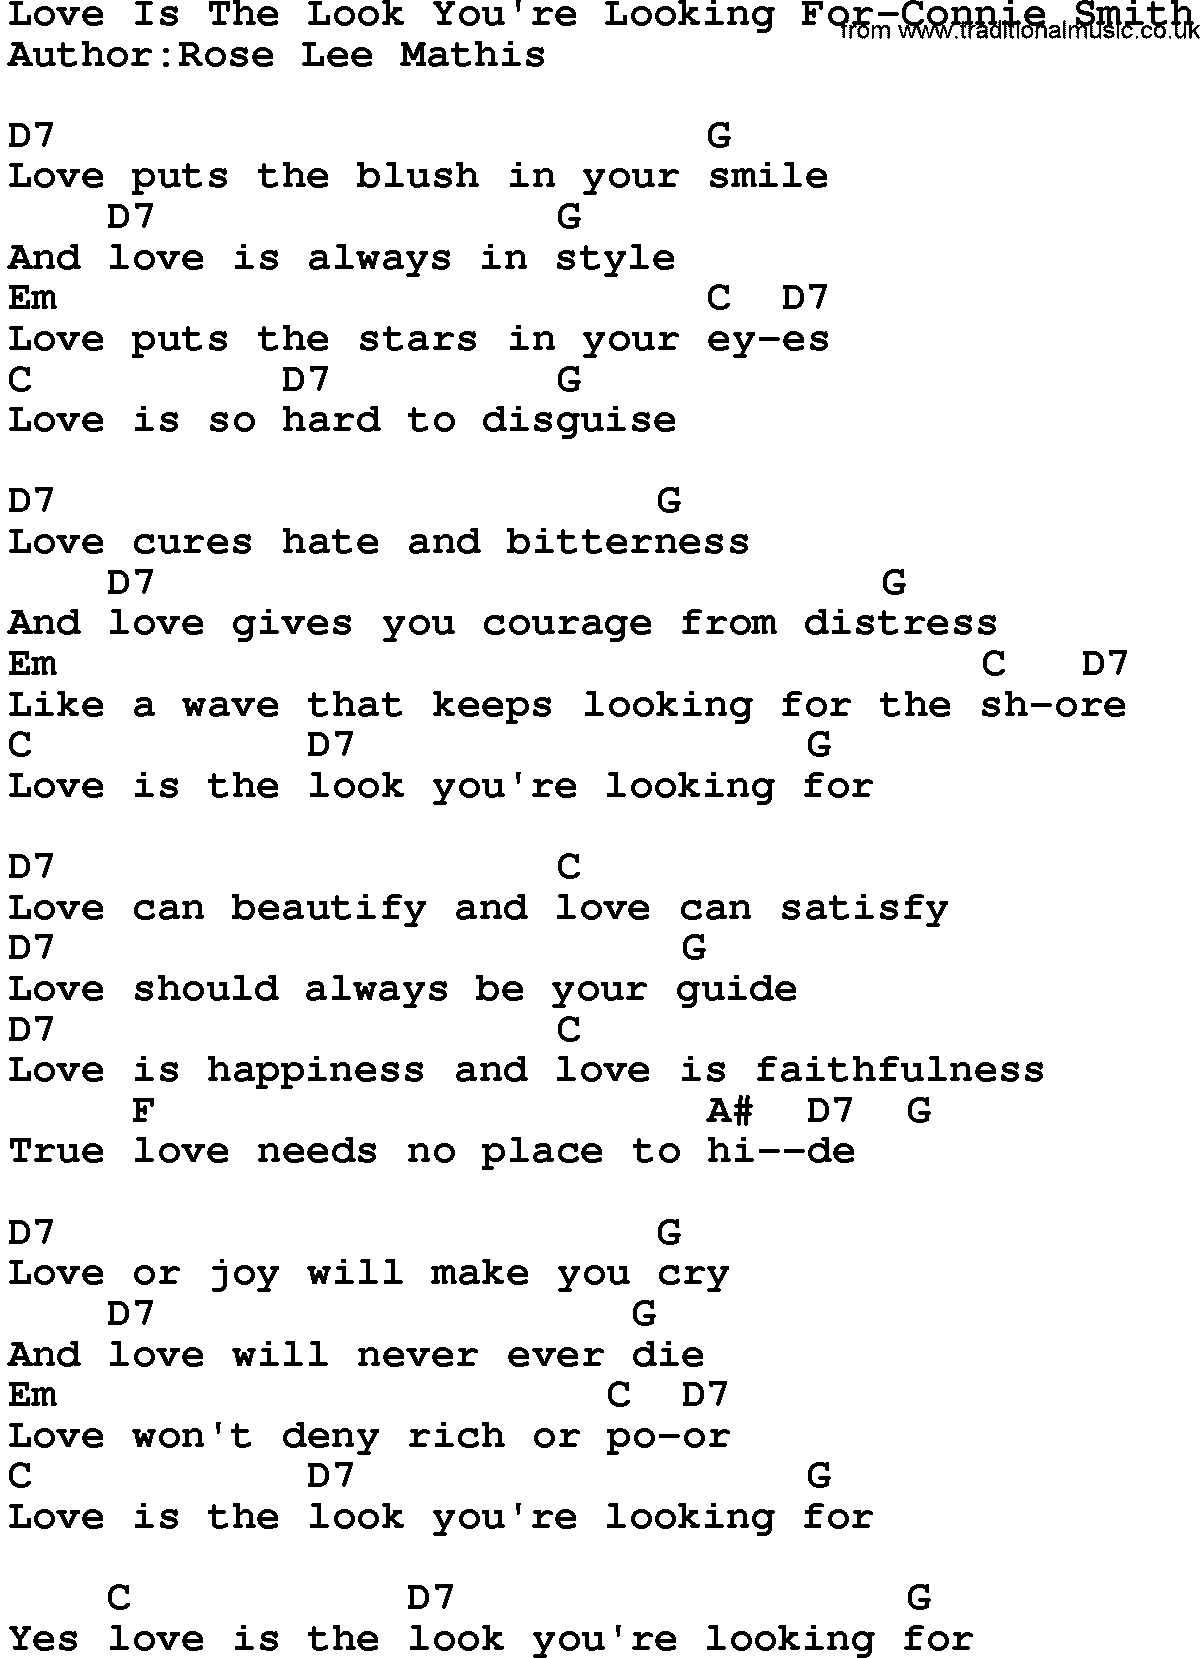 Looking for love song lyrics